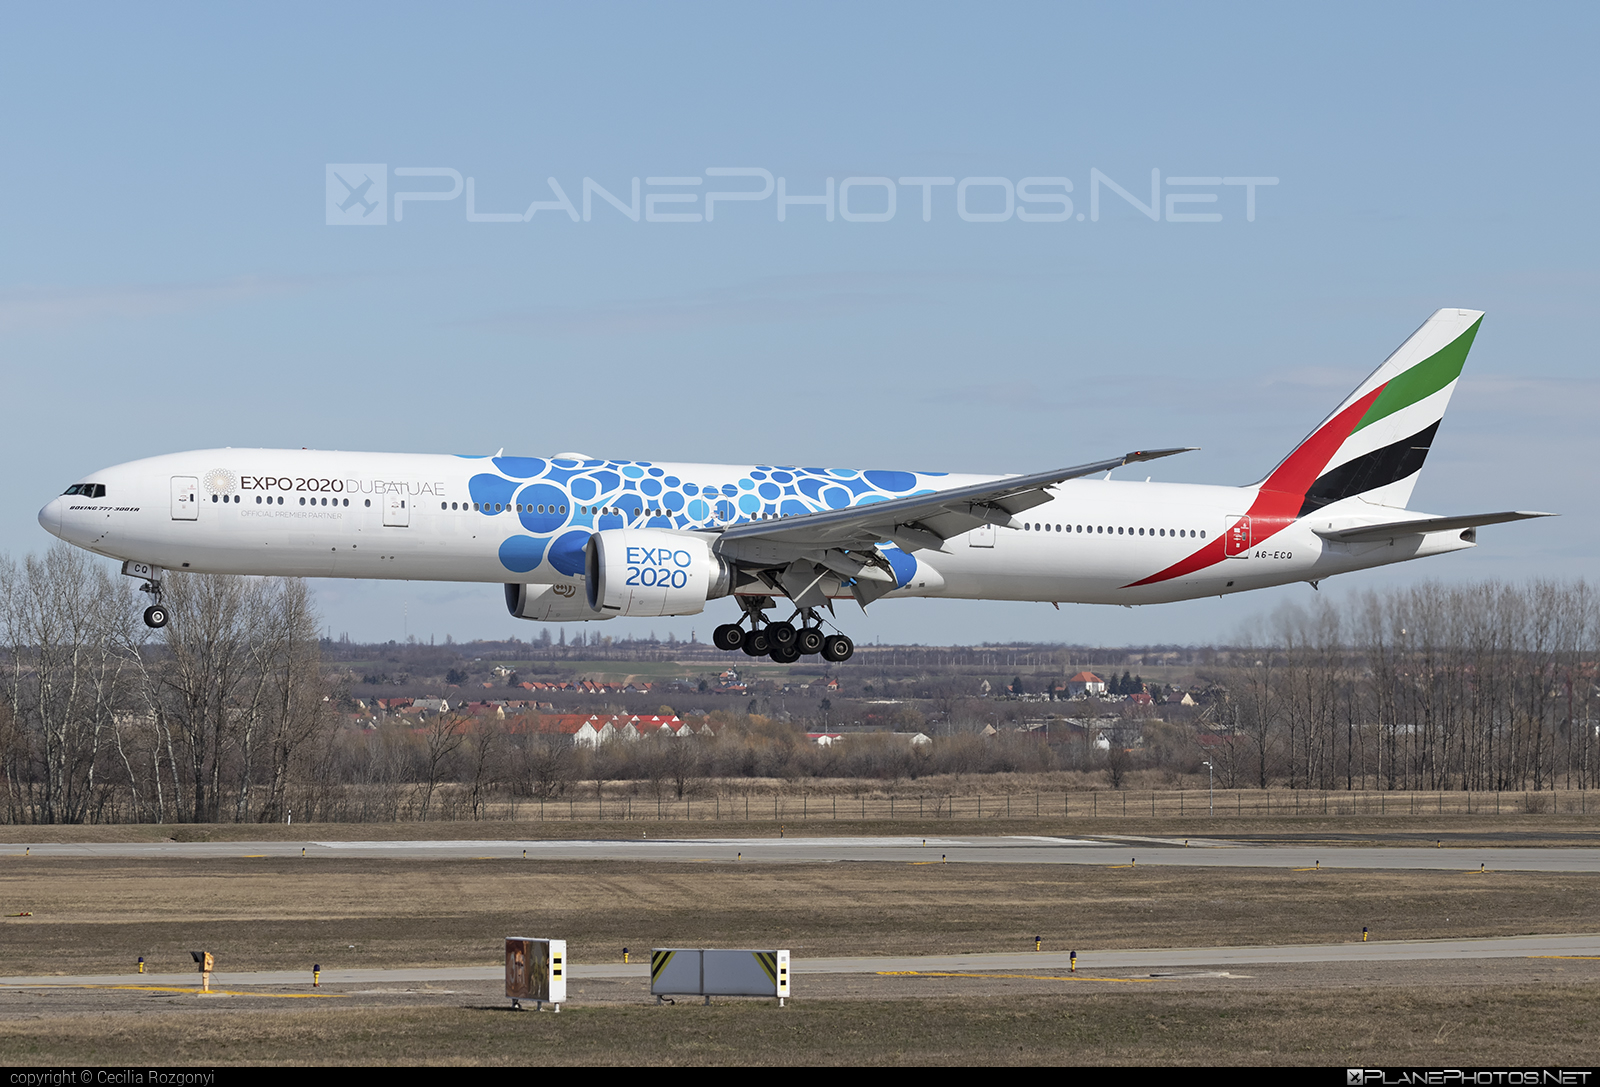 Boeing 777-300ER - A6-ECQ operated by Emirates #b777 #b777er #boeing #boeing777 #emirates #tripleseven